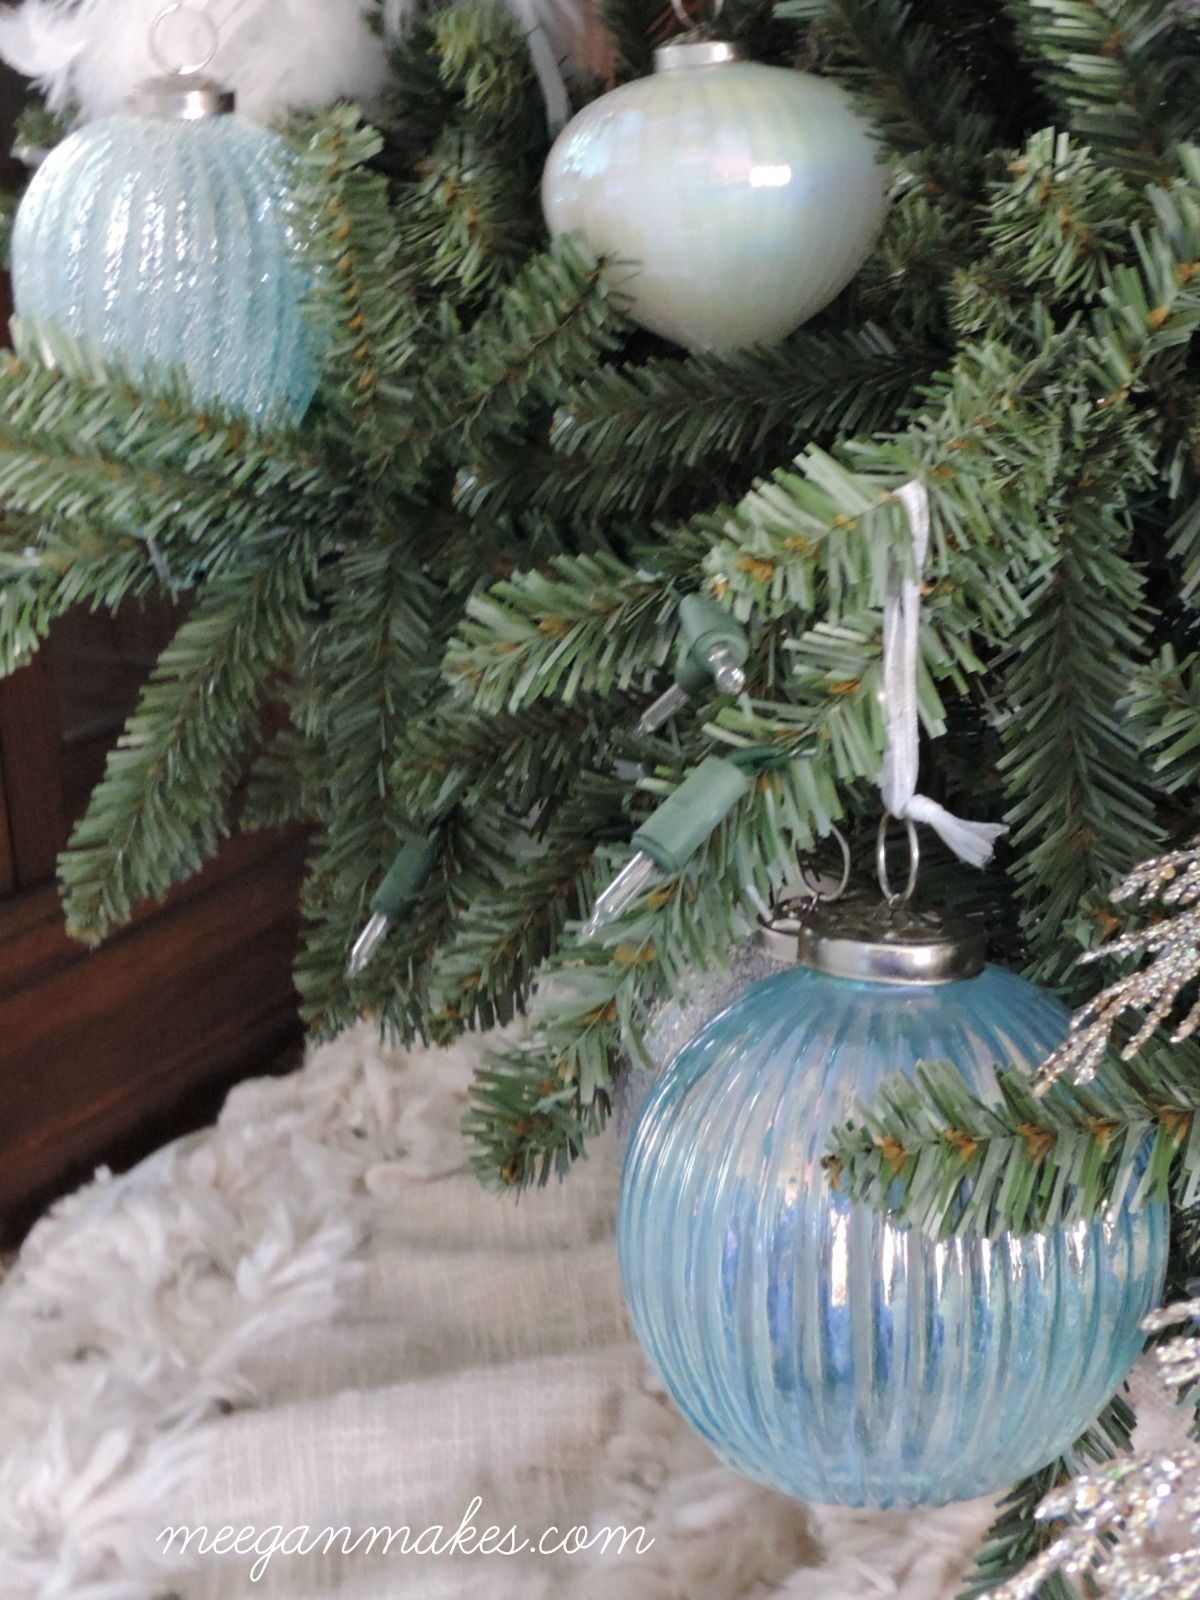 Christmas Tree Ornament Sets.Coastal Elegance Ornament Set Christmas Tree Ornaments And